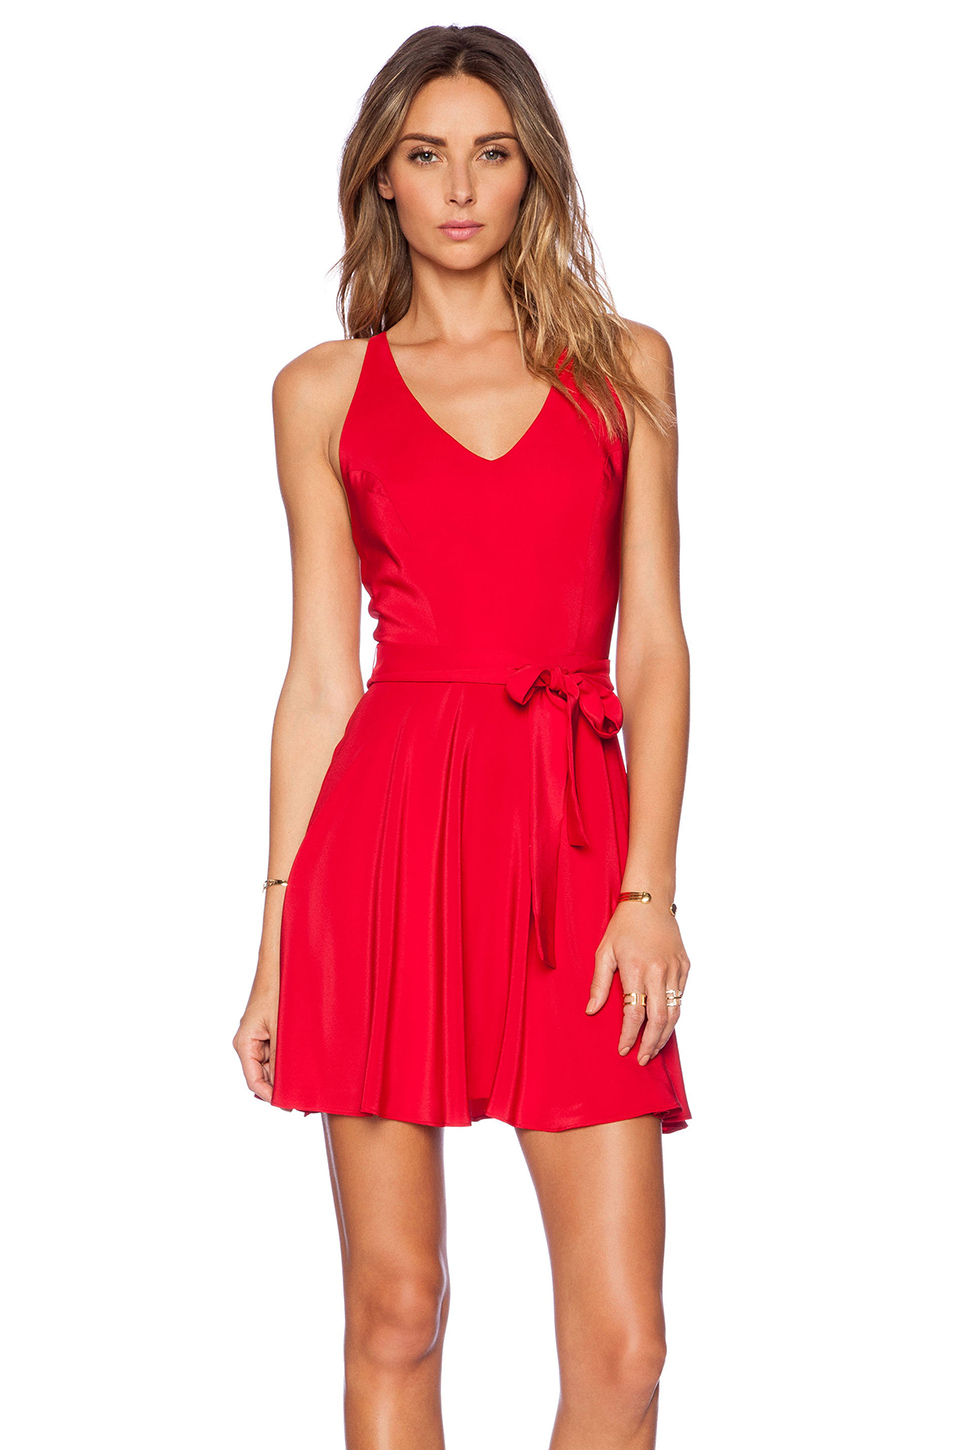 Pink ruby clothing online